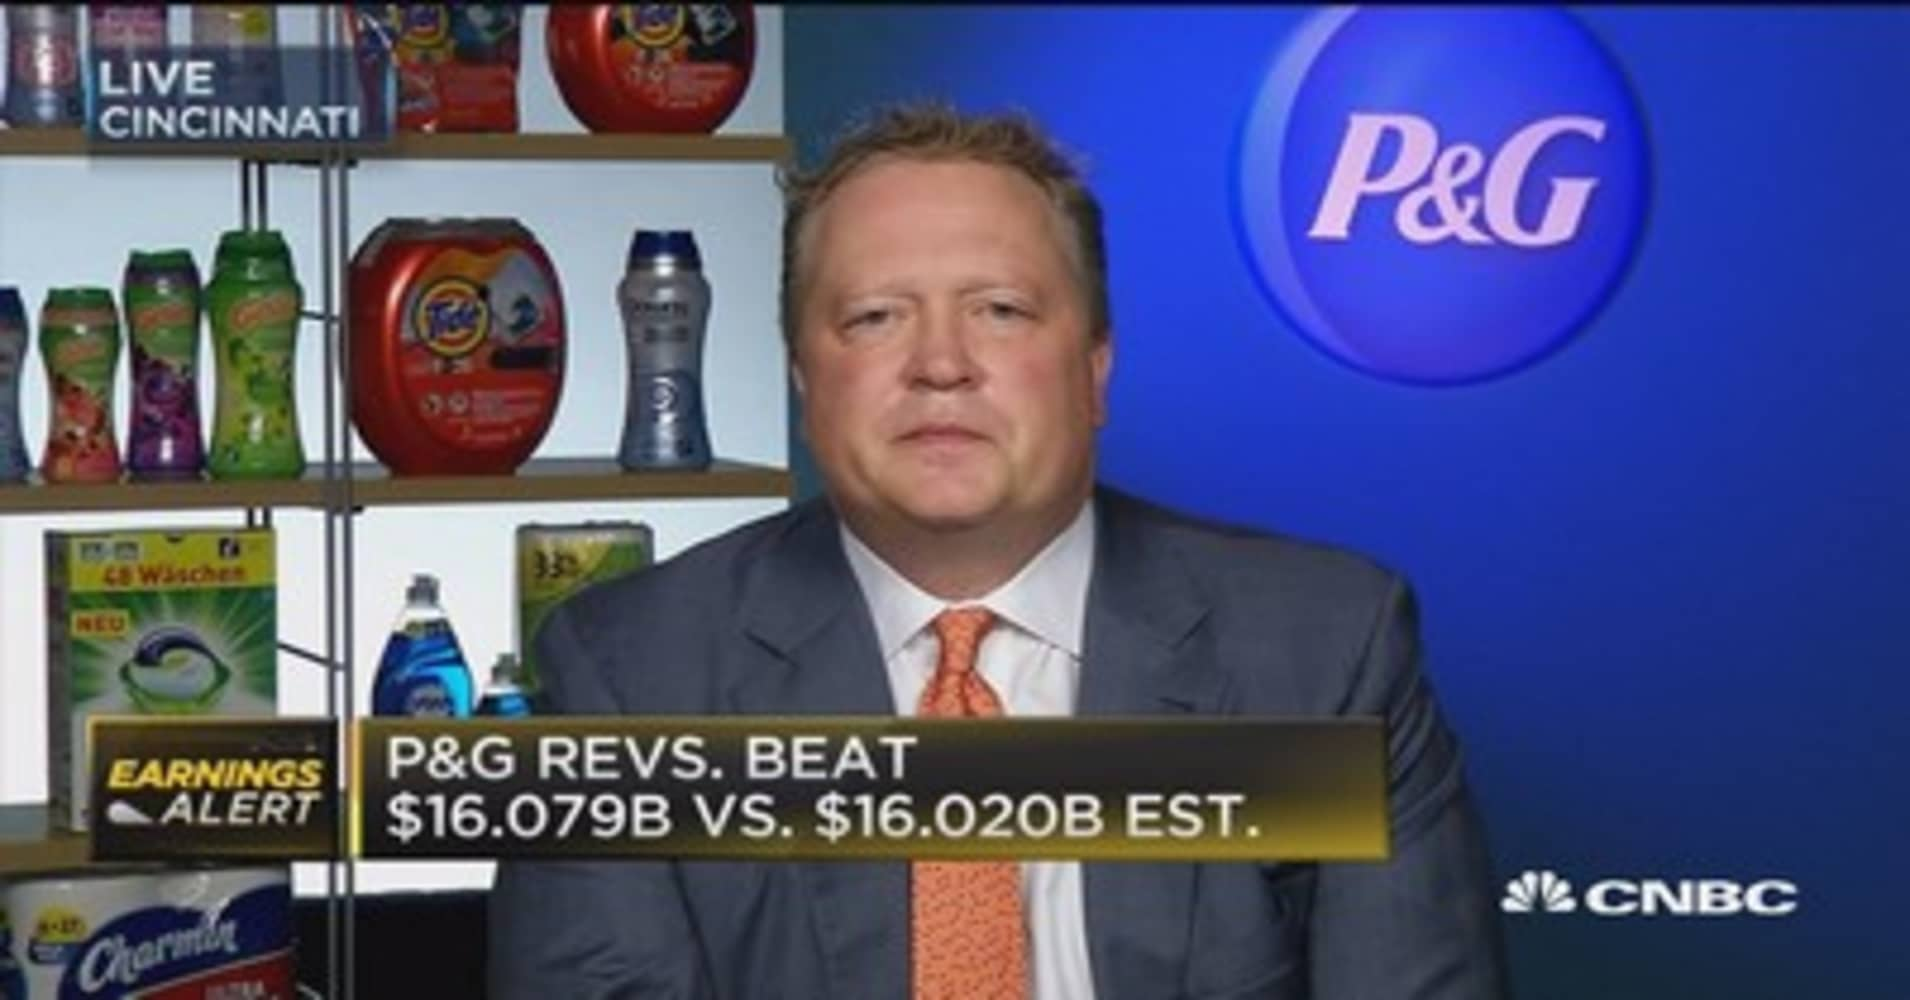 Procter & Gamble Stock Quote Procter & Gamble Earnings Sales Top Wall Street Estimates As Cost